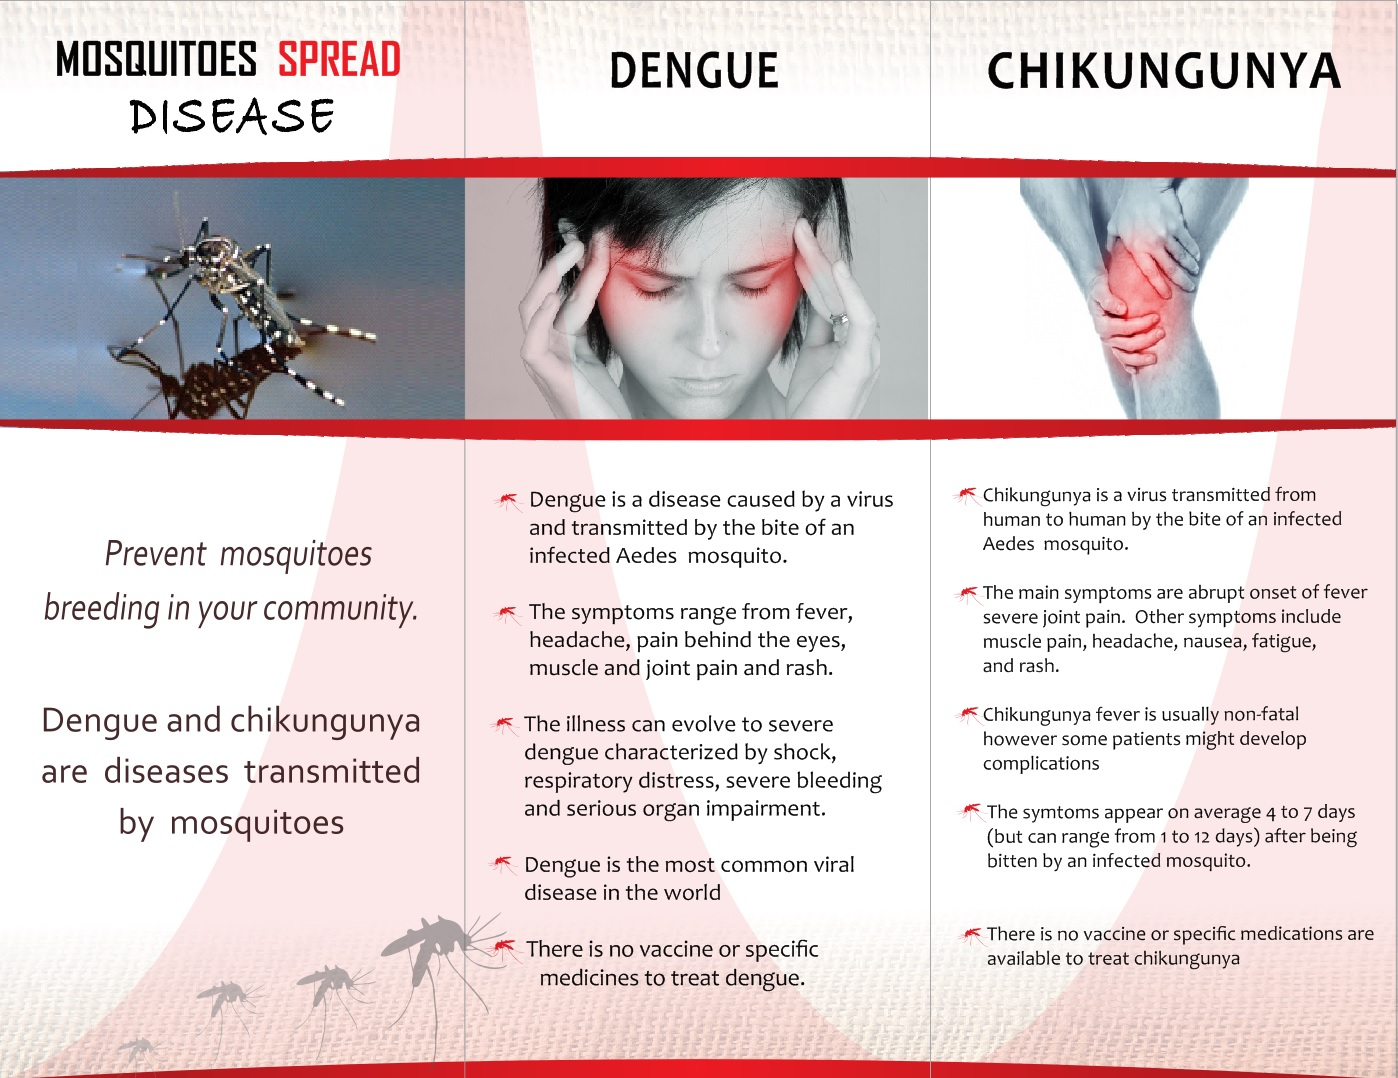 chikungunya-virus-lets-discuss-online